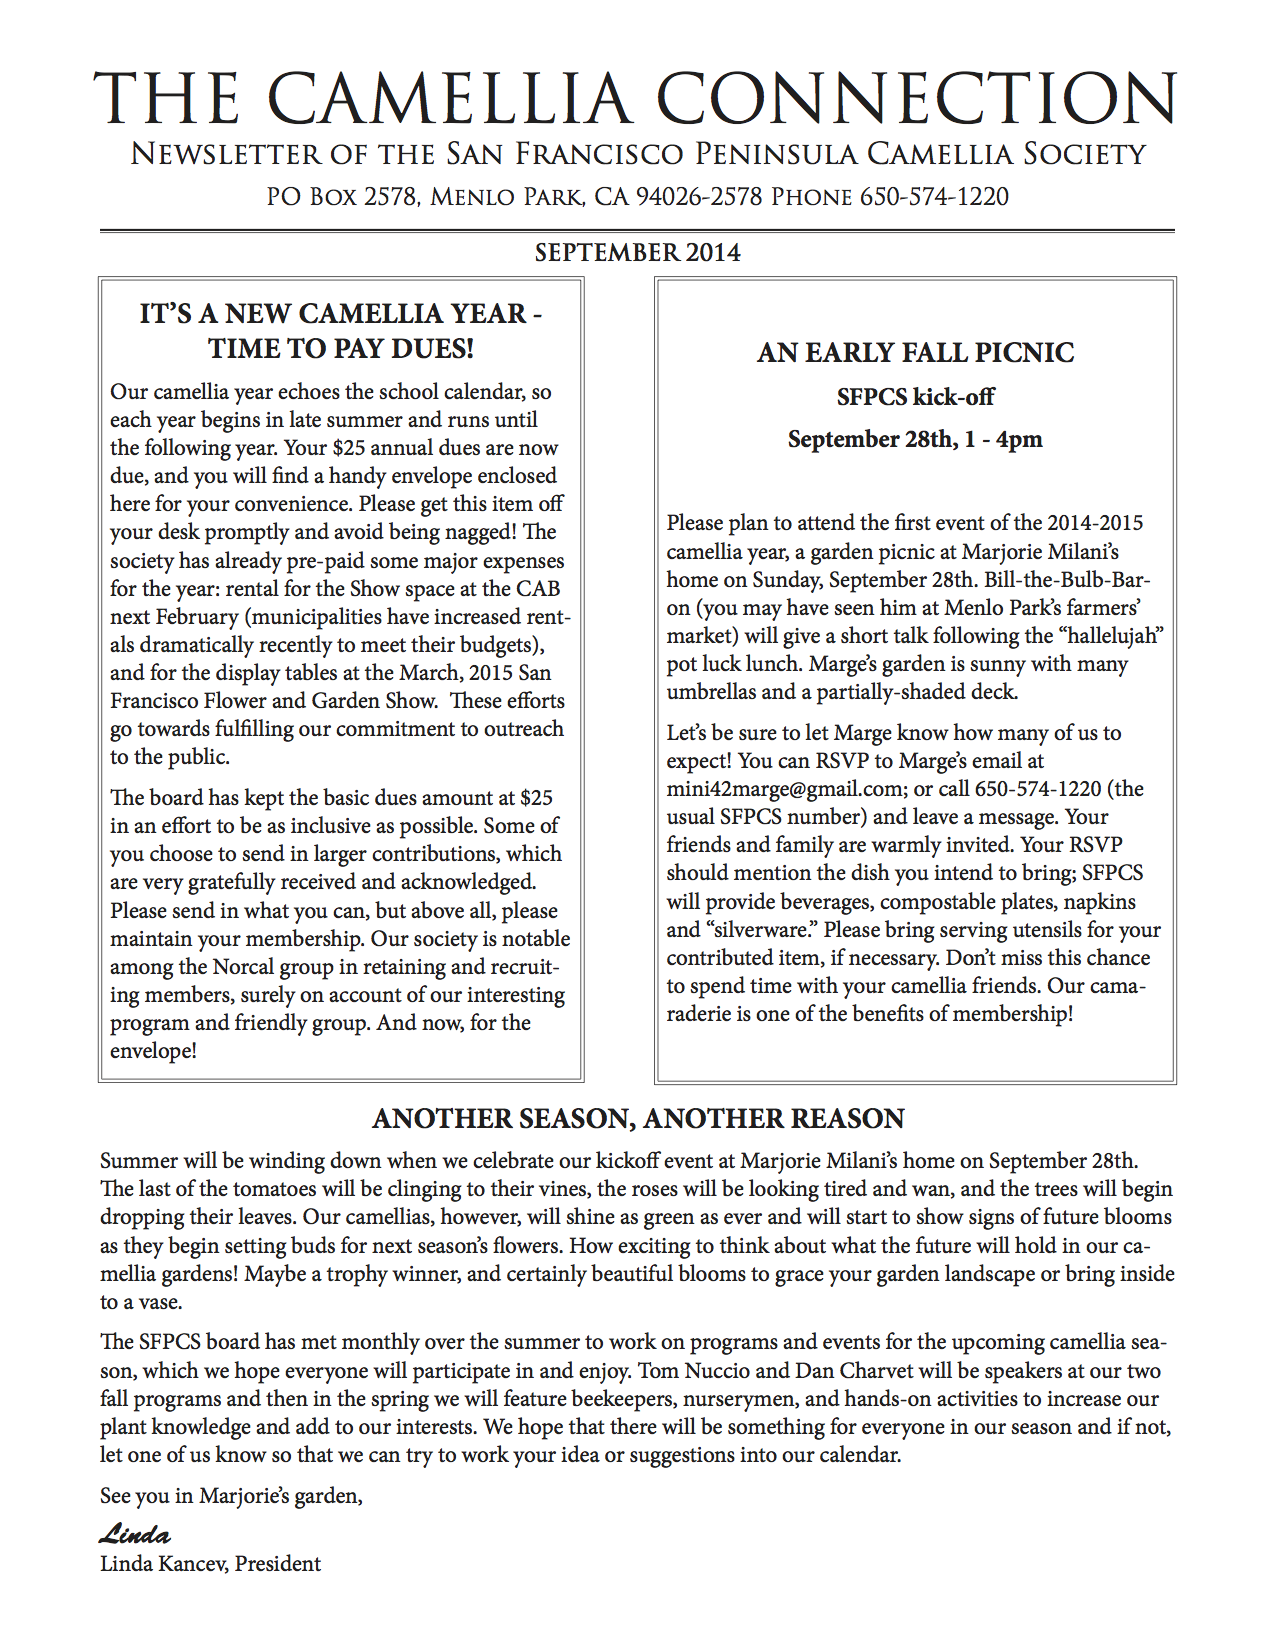 September 2014 newsletter p1